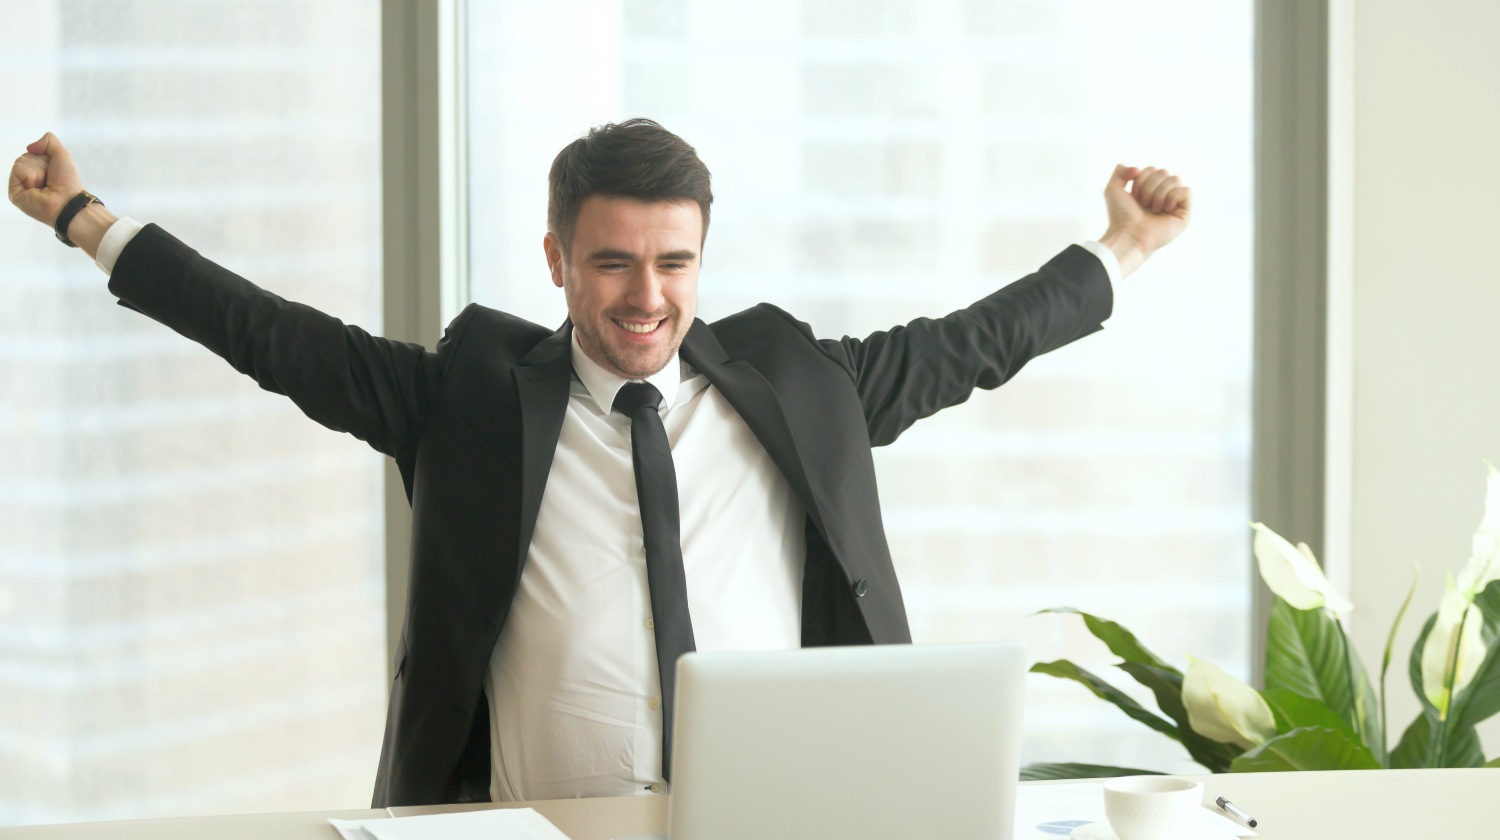 Happy businessman in suit raising hands looking at laptop | You Are Going To Be The Best At Anything You Do With These Tips | You Are The Best | how to be the best you | Featured